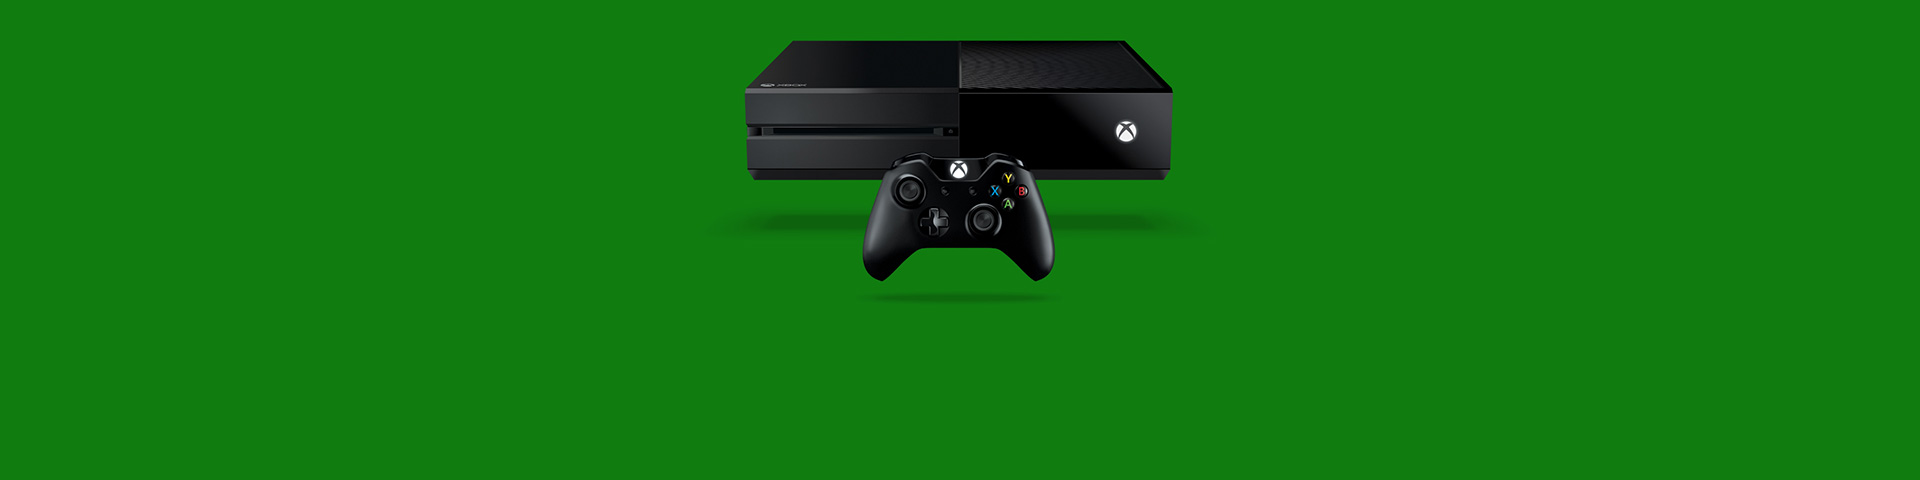 An Xbox One console and controller